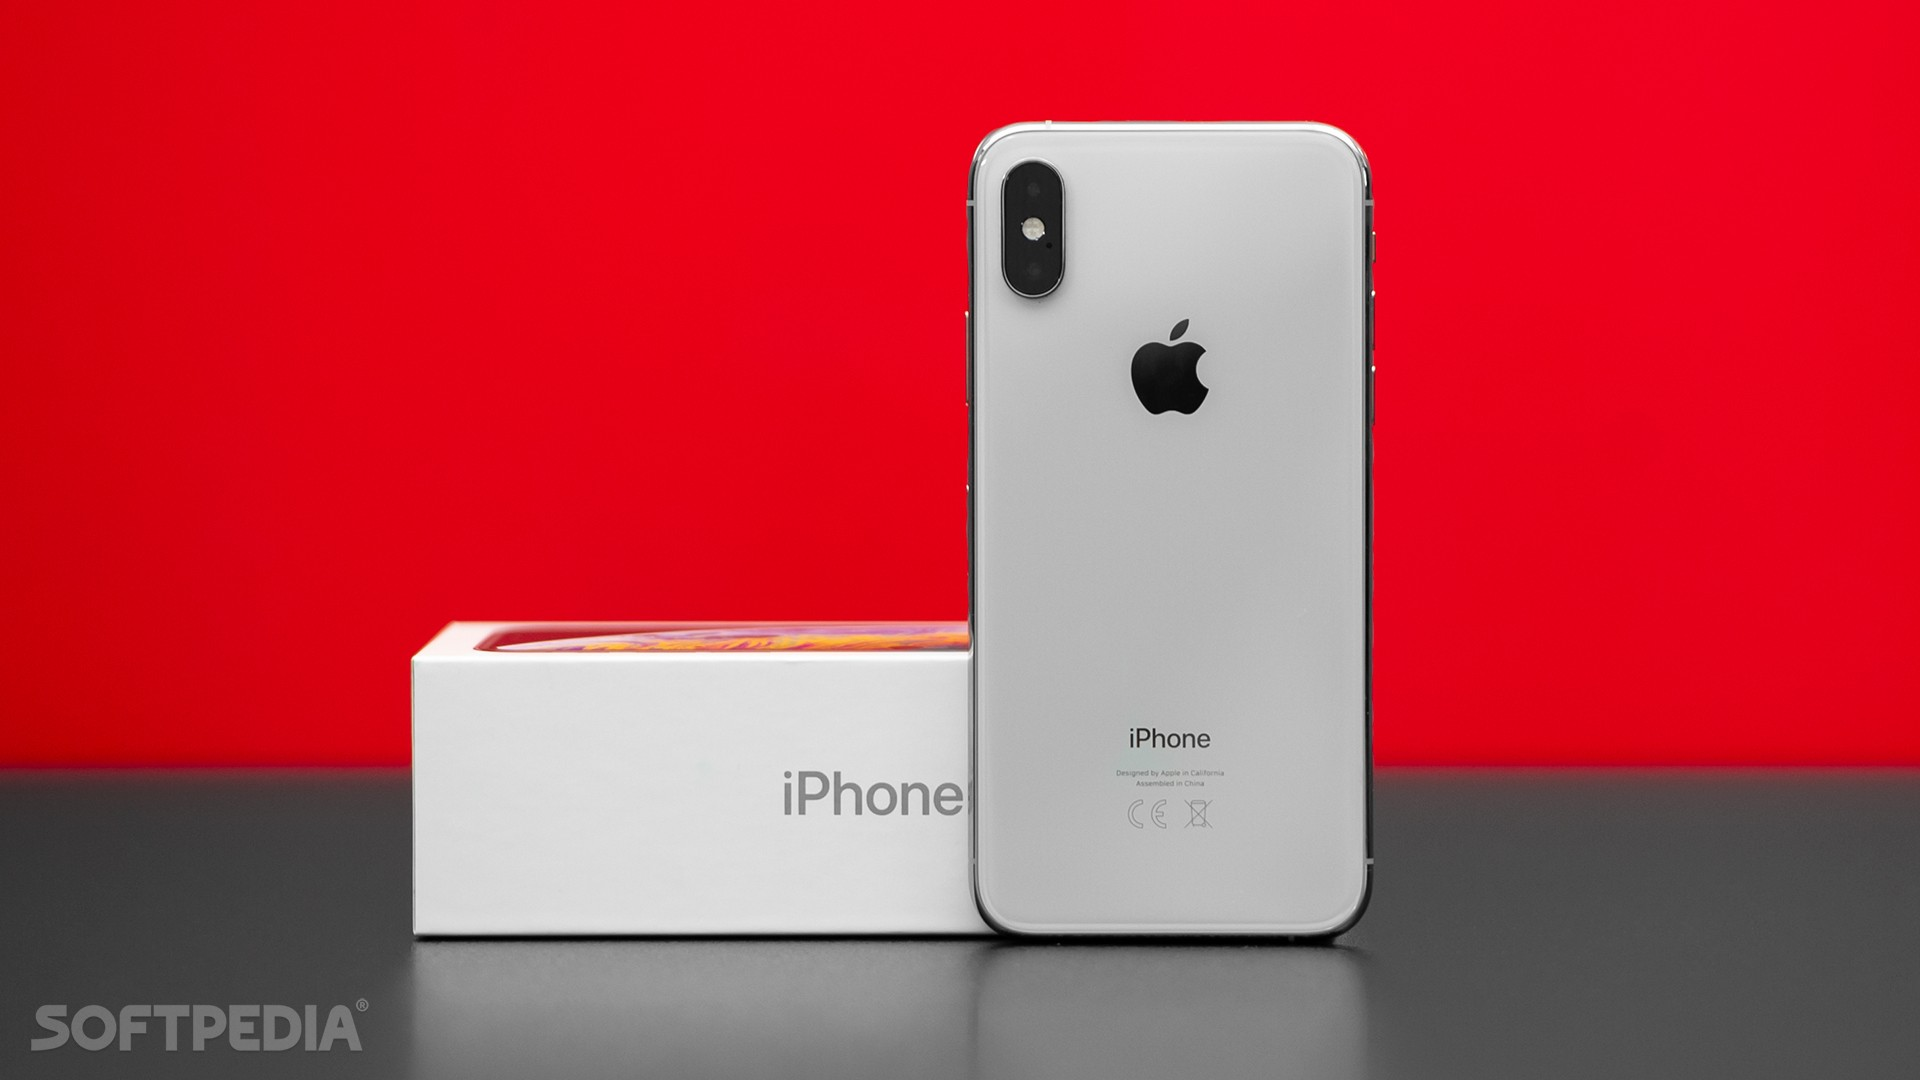 New Rumors Claim Apple to Launch Notchless iPhone in 2020